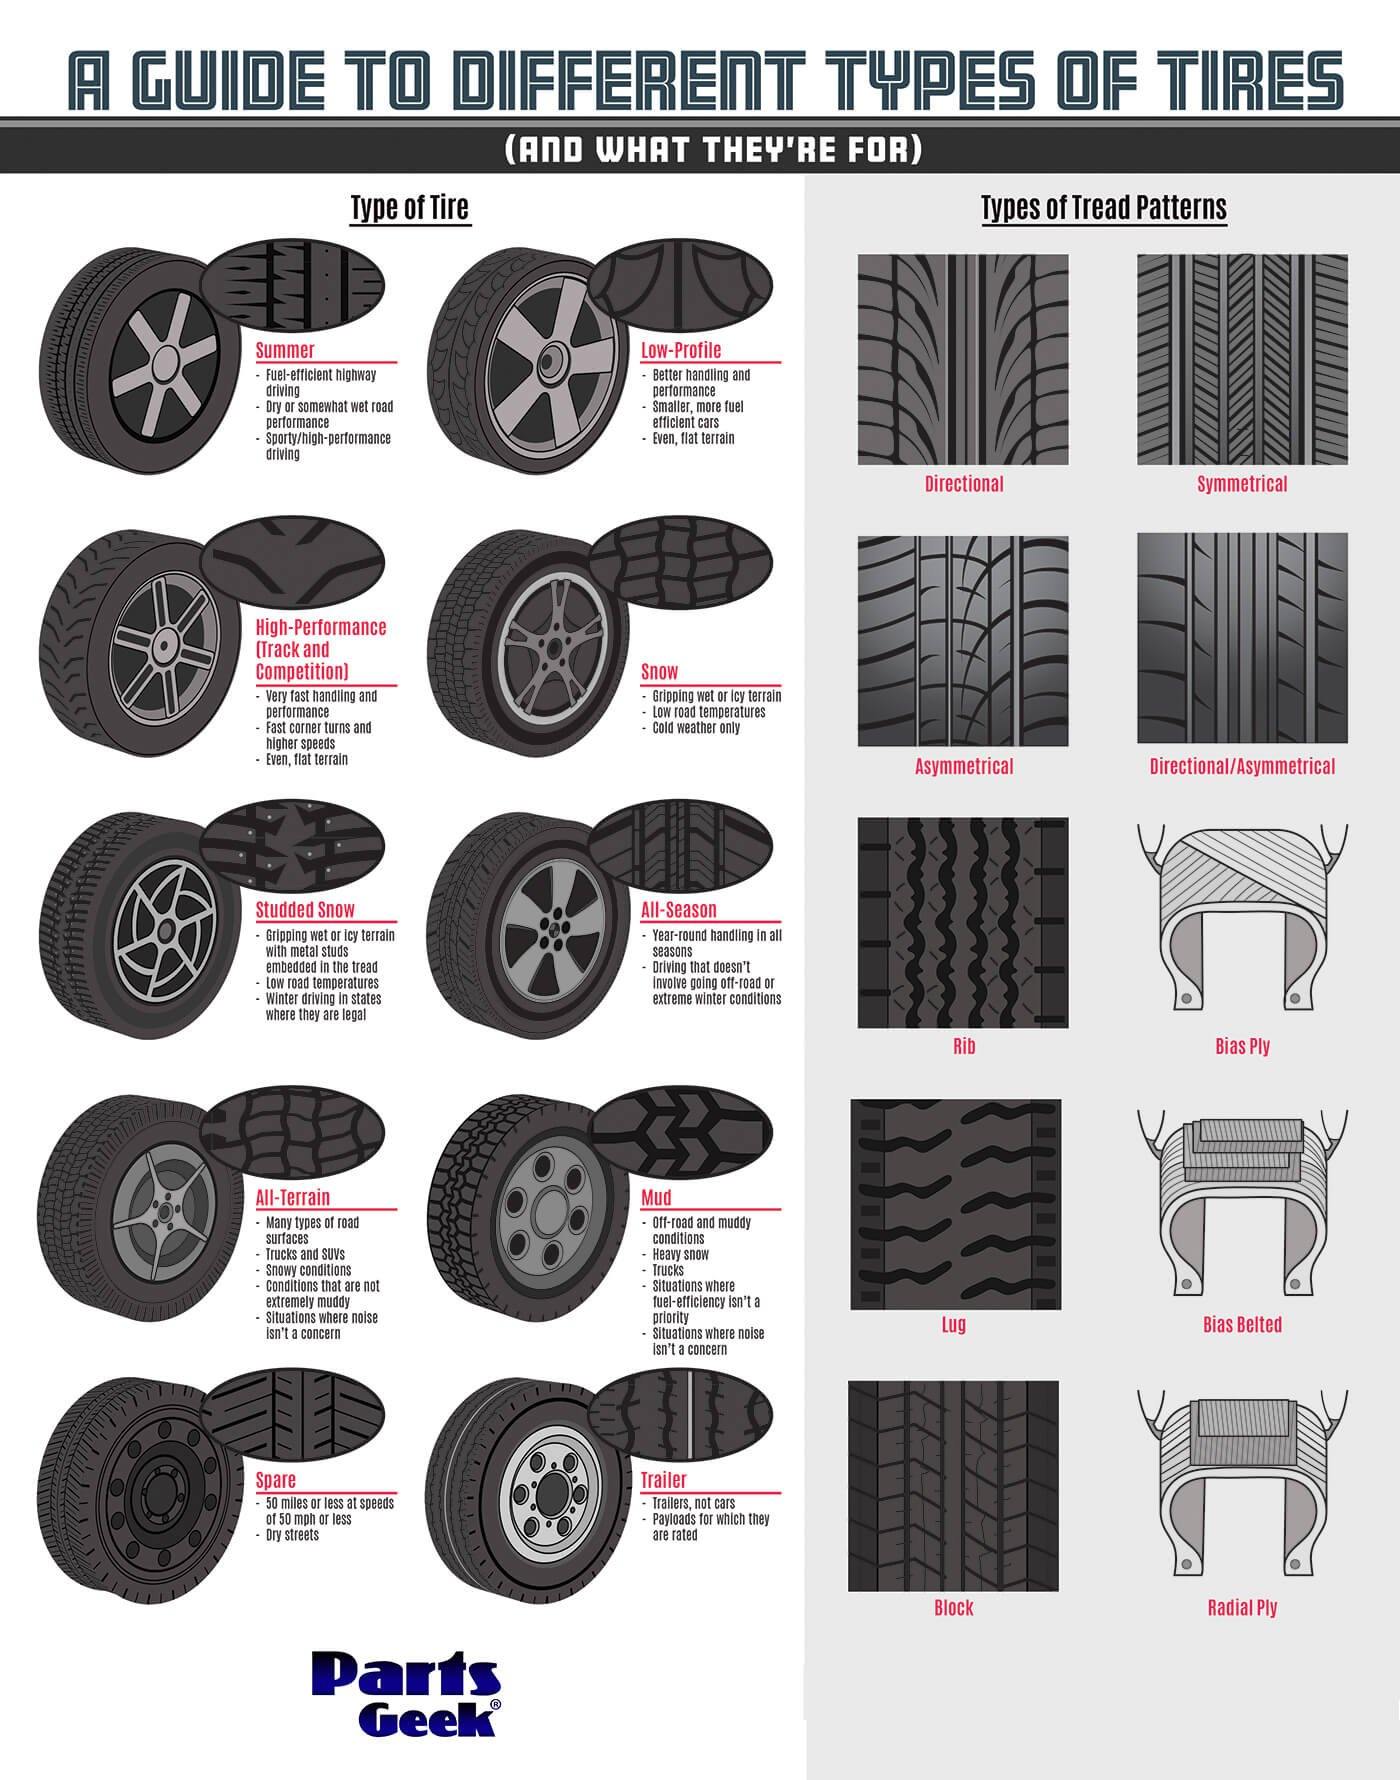 A Guide To Choosing The Right Tires For Your Truck Or Suv